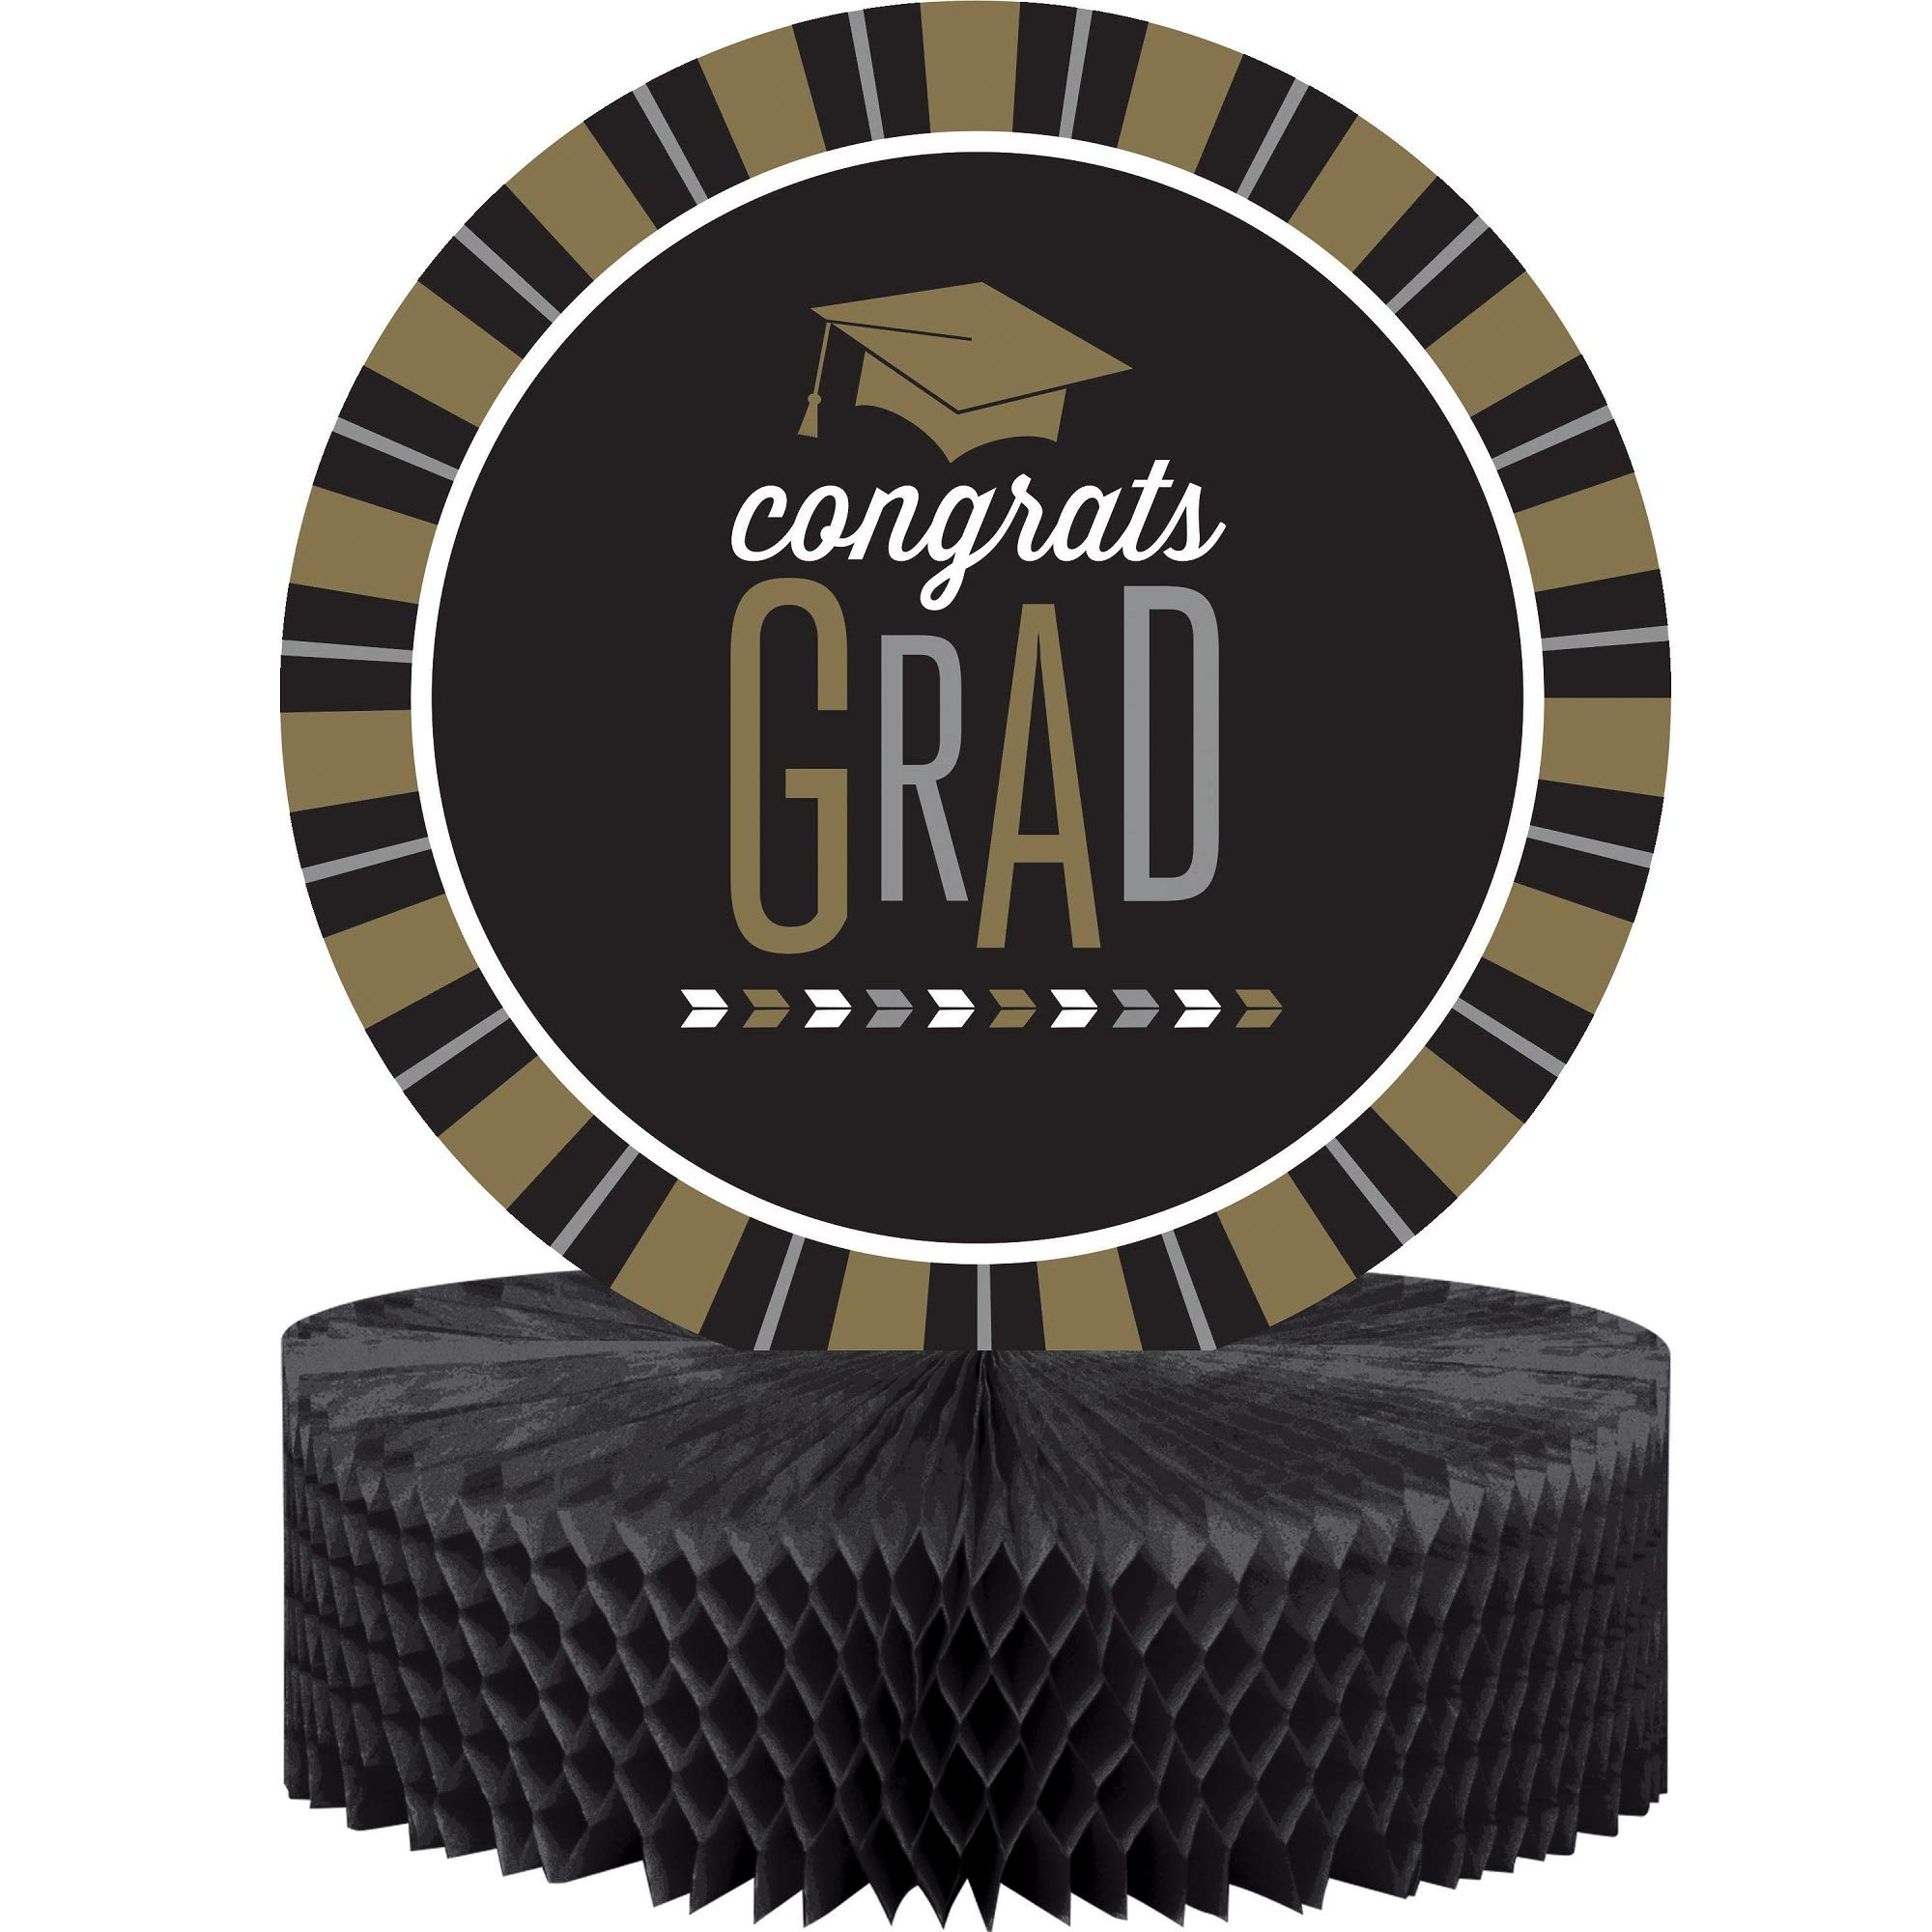 Pack of 12 Black and Brown Congrats Grad Honeycomb Party Centerpiece 13.5''